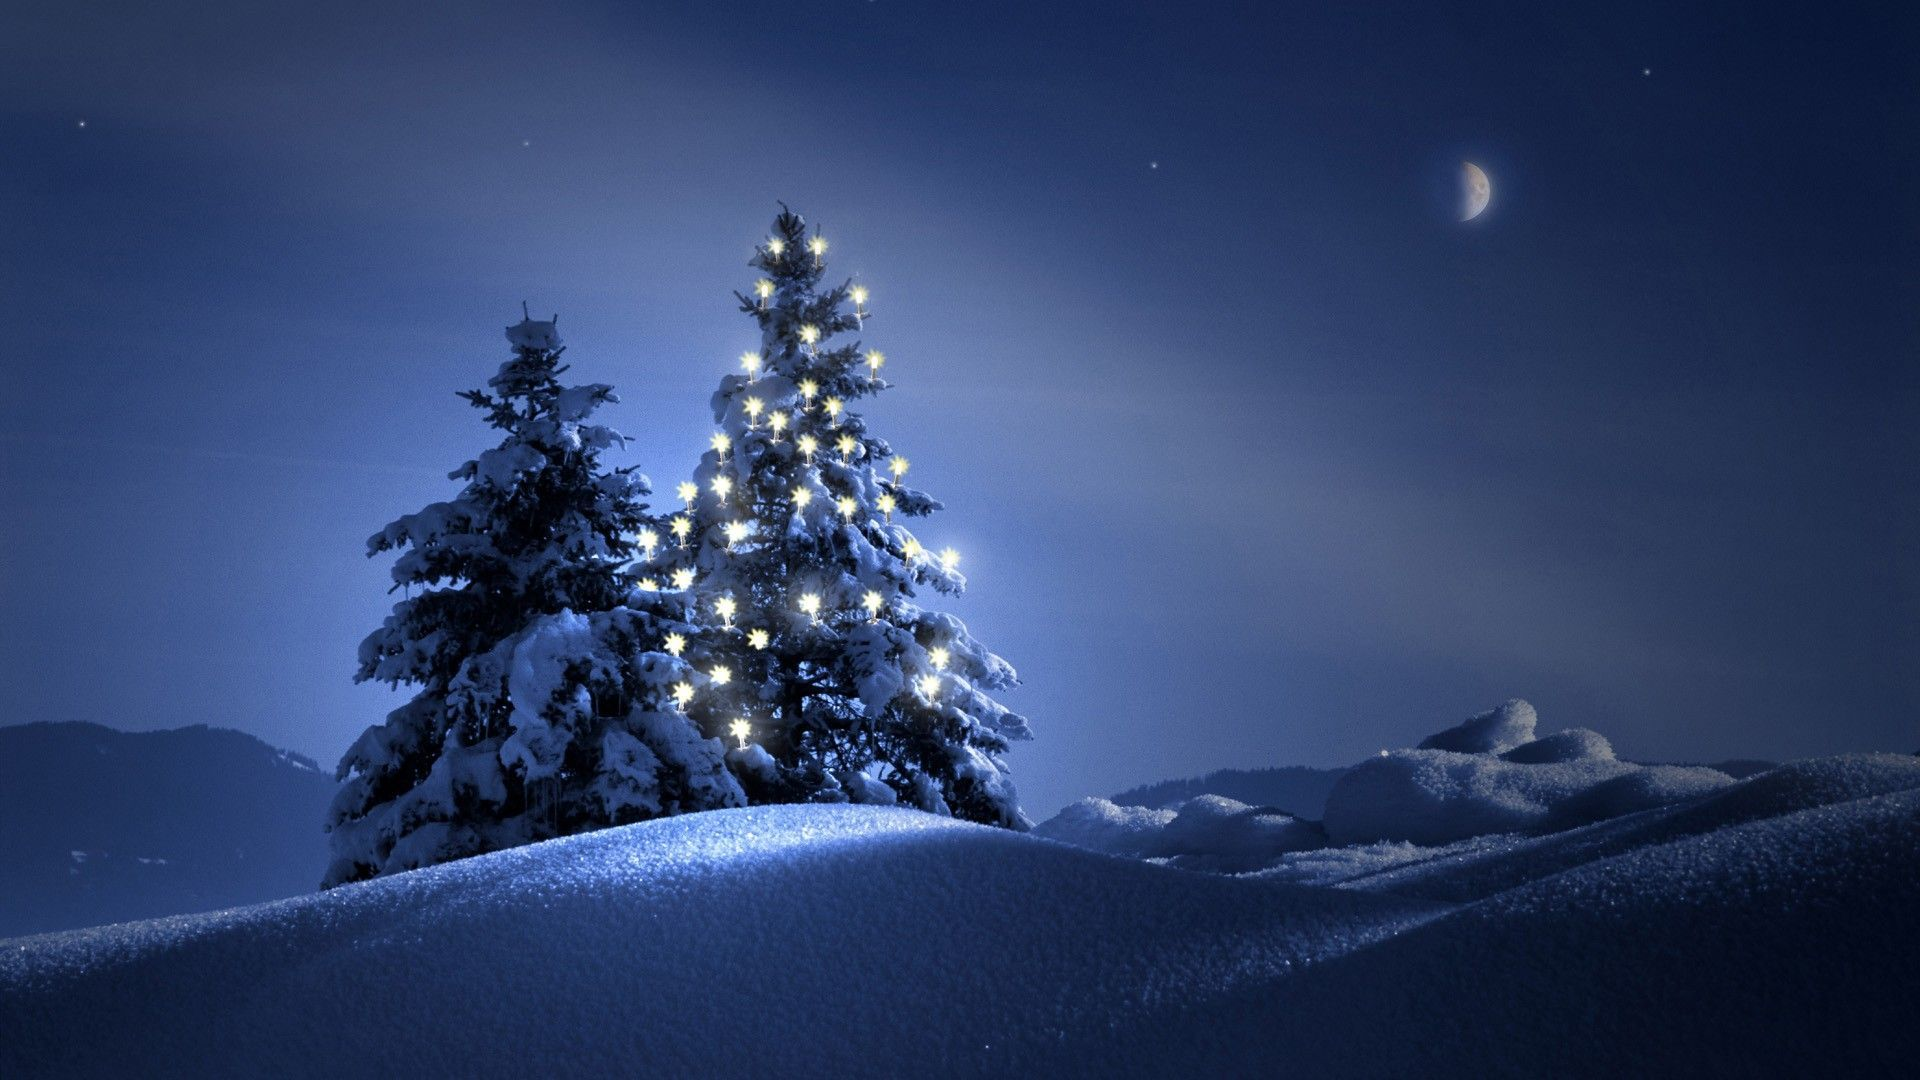 Beautiful Christmas Tree Snow wallpaper. wallpapers